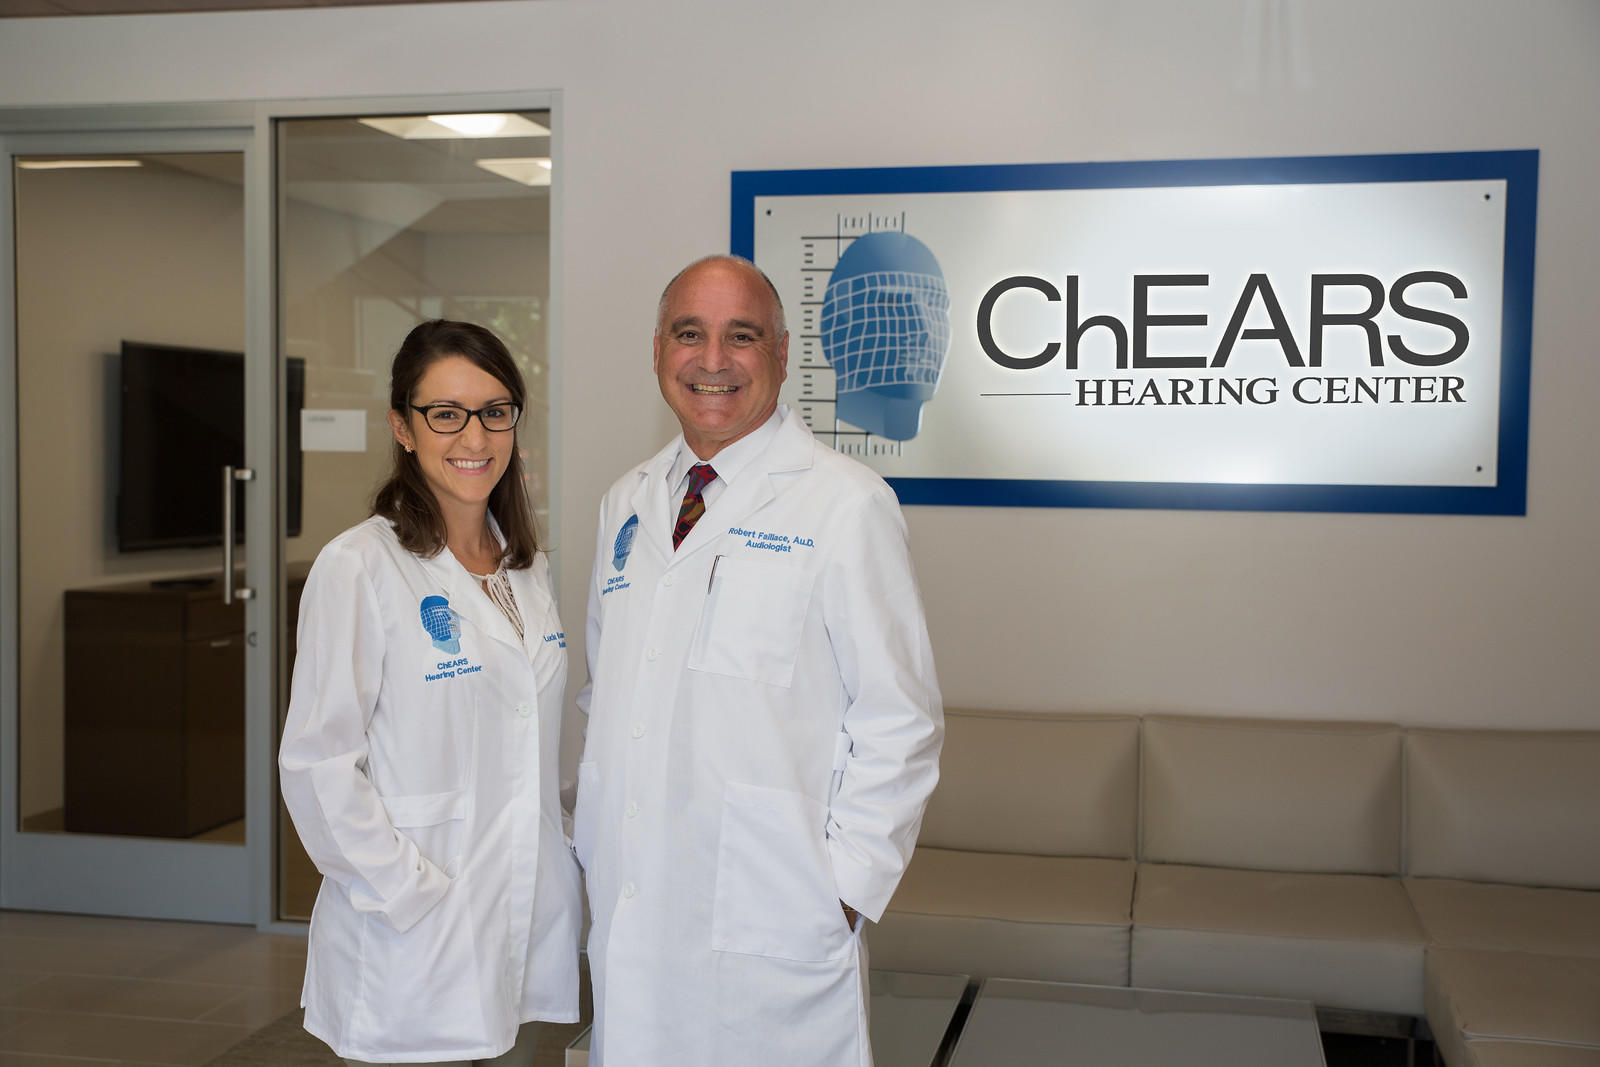 ChEARS Hearing Center image 4